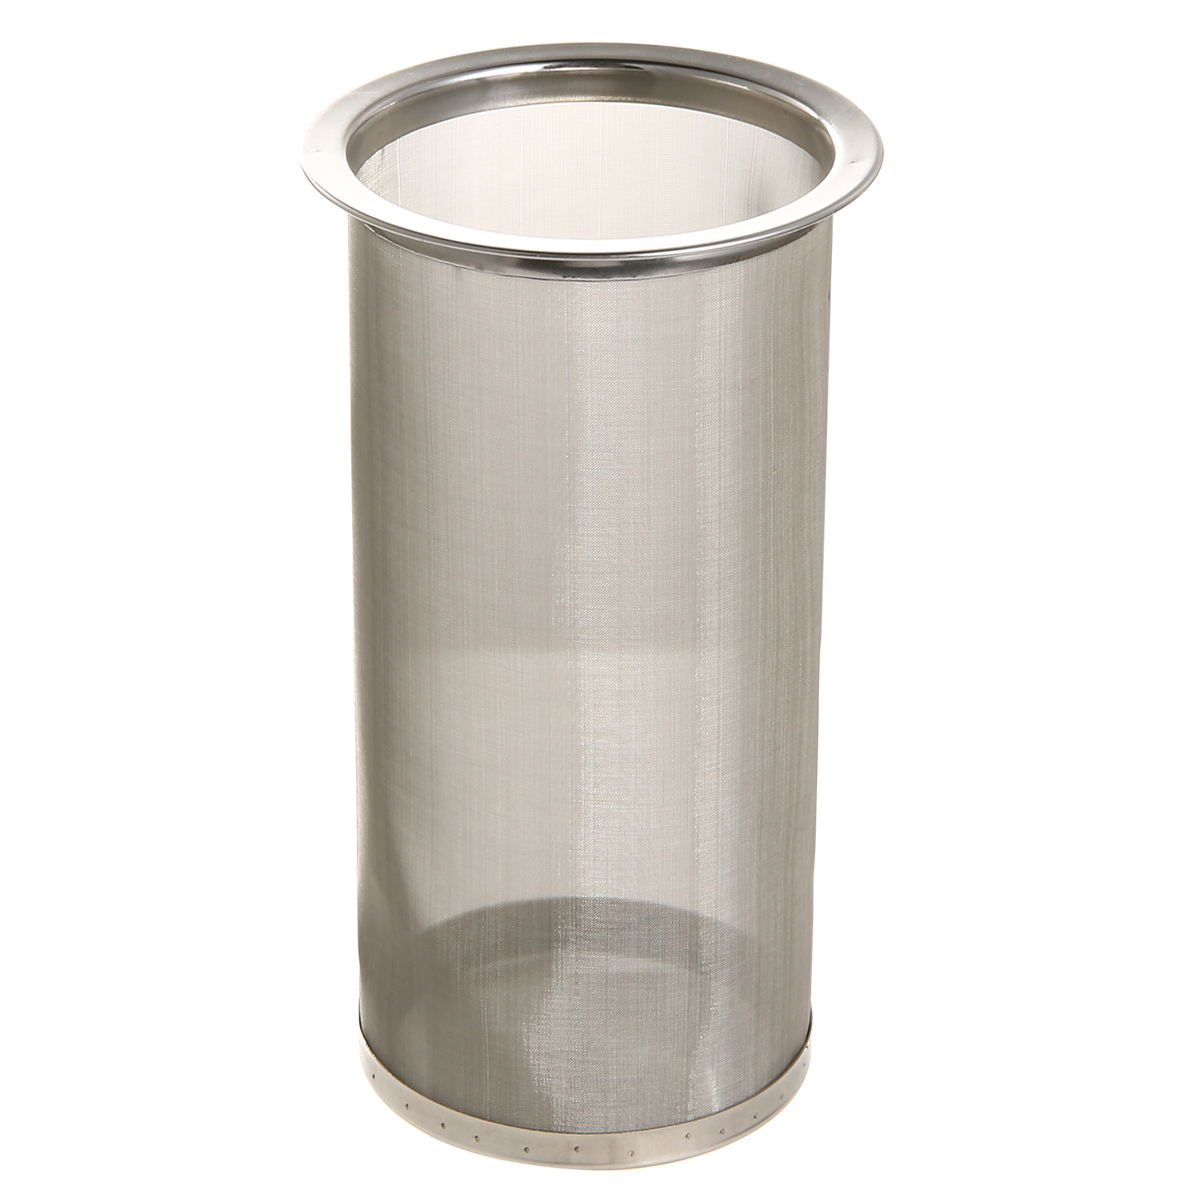 1Pc Stainless Steel Jar Filter 1Quart Coffee Infuser Filter Fit For Mason Jars Durable Easy Espresso Maker Coffeeware